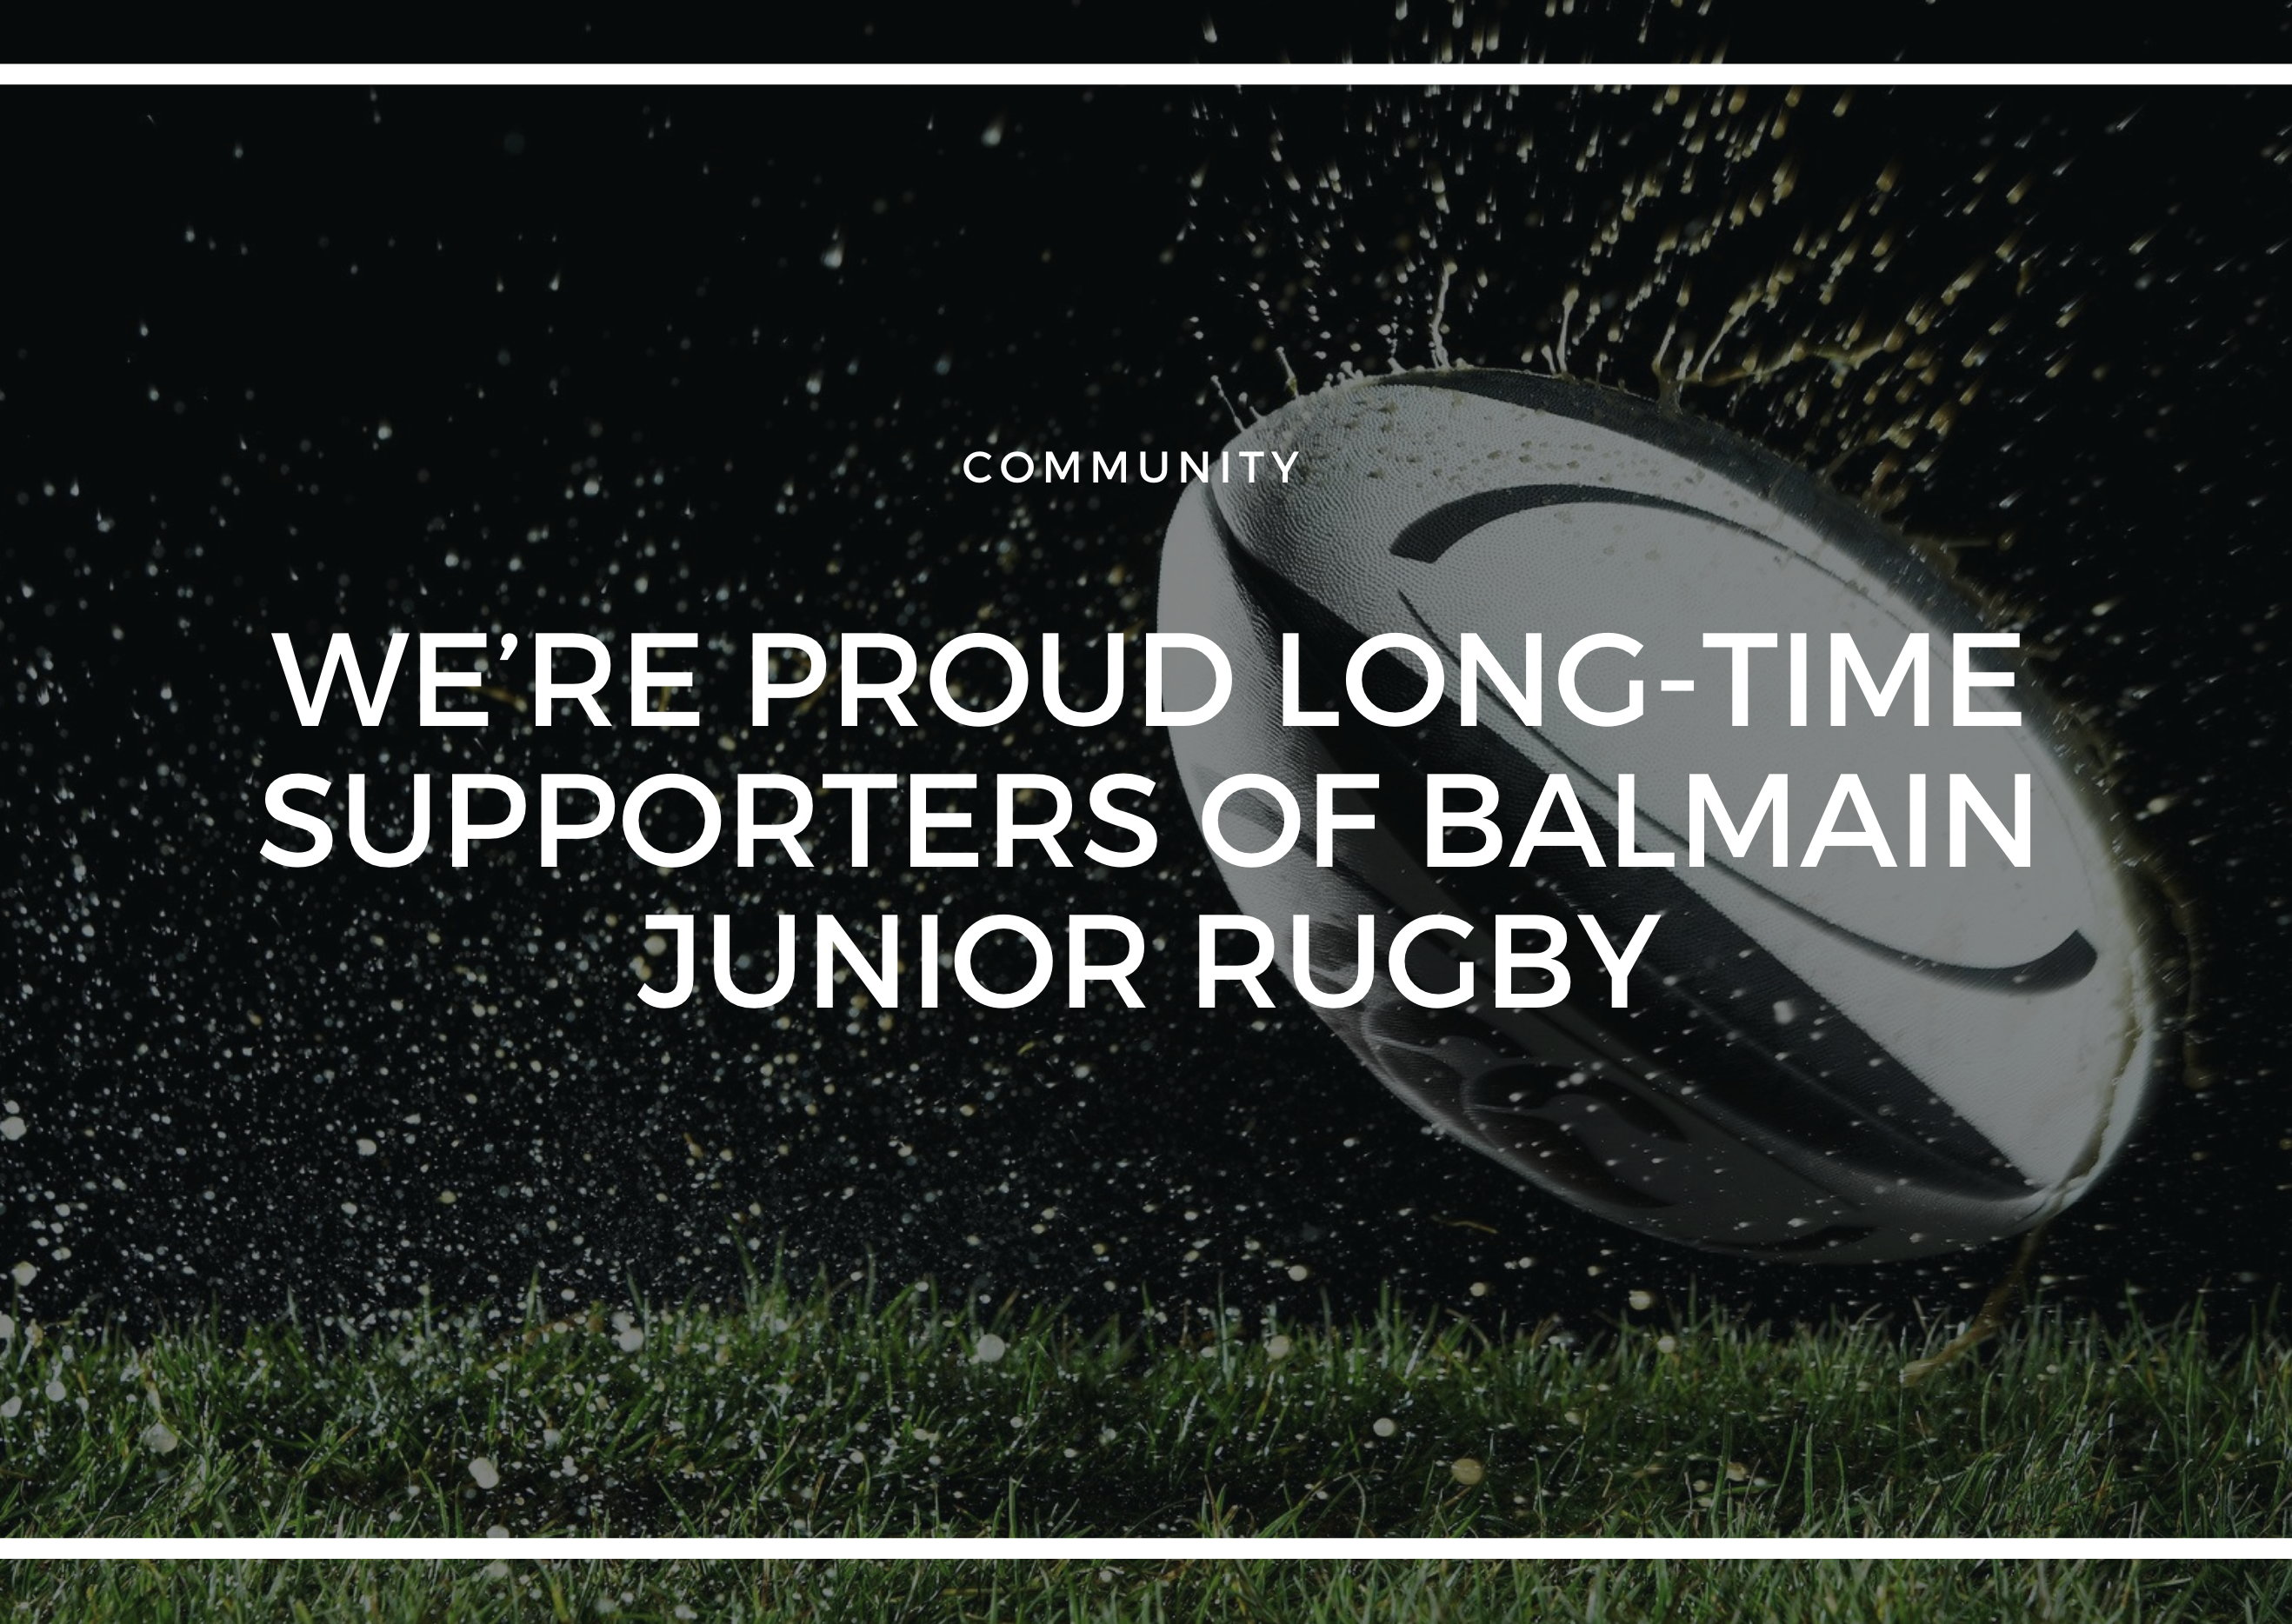 WE'RE PROUD LONG-TIME SUPPORTERS OF BALMAIN JUNIOR RUGBY